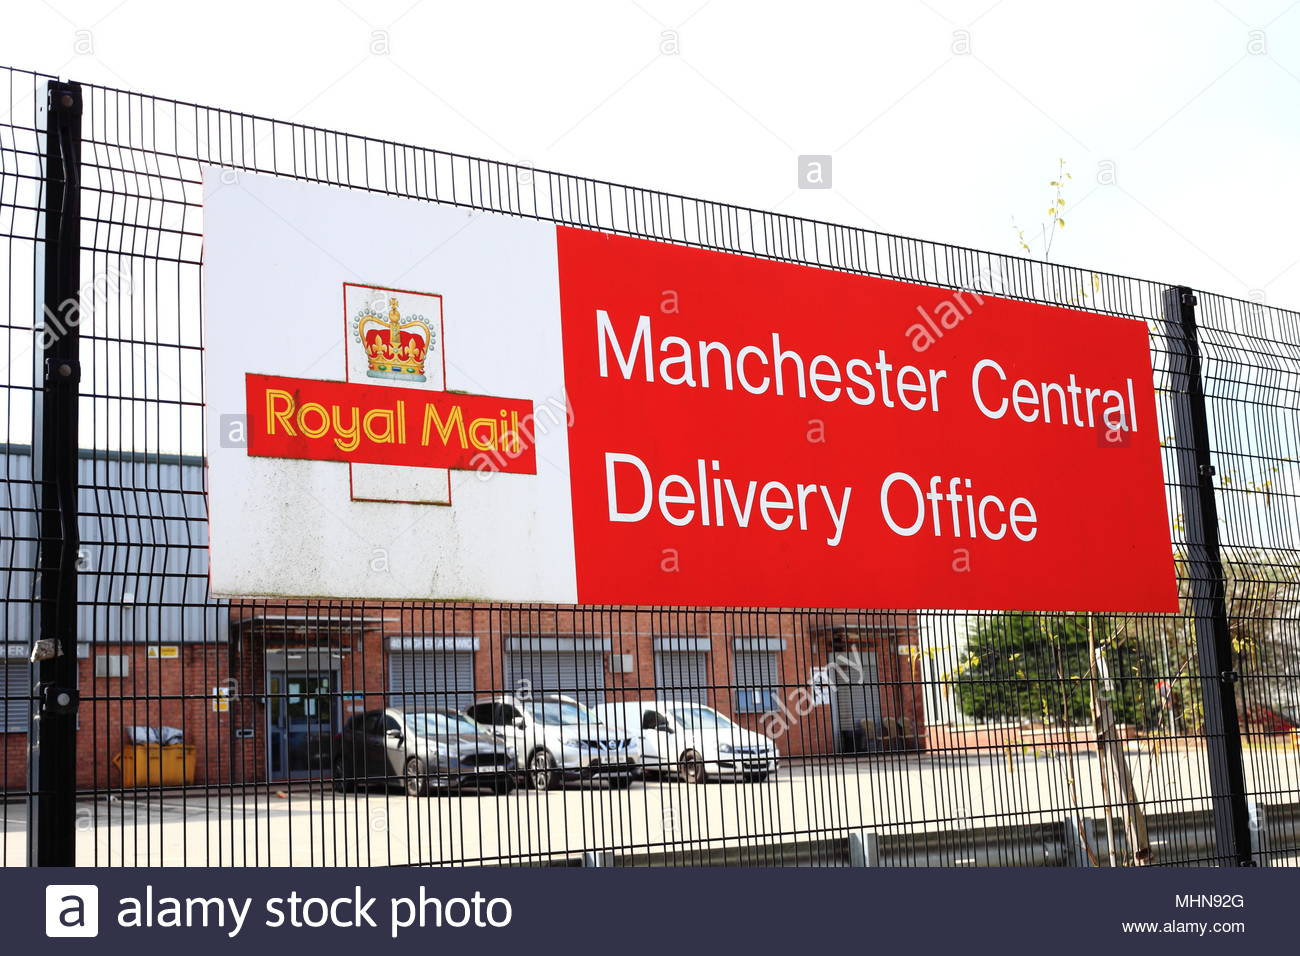 Royal Mail Central Manchester Delivery Office At Ardwick Manchester May 2018 - Stock Image